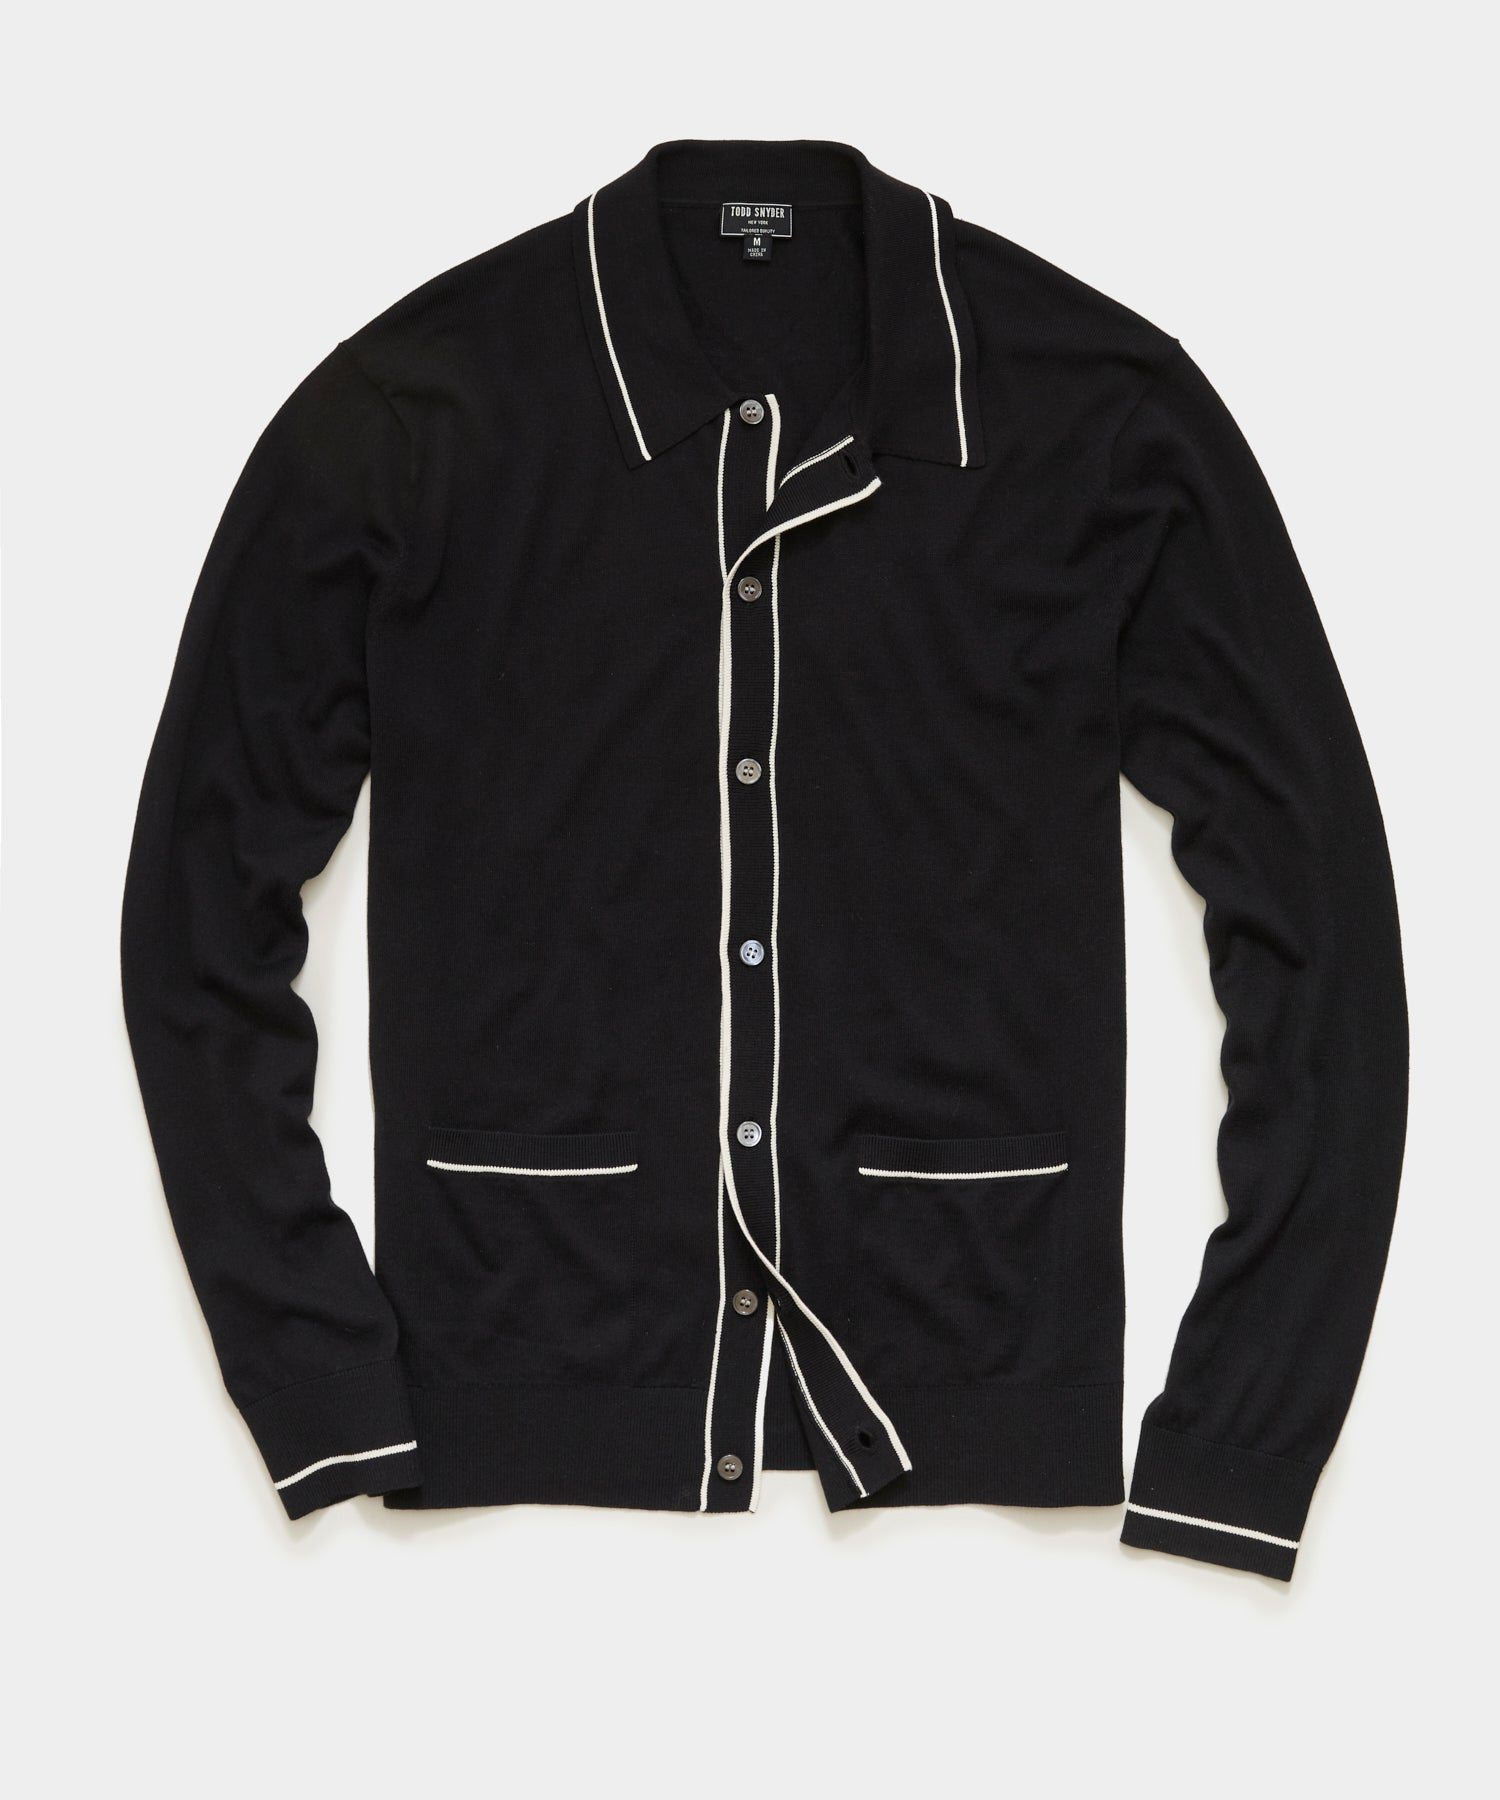 Long Sleeve Button Down Sweater Polo in Black